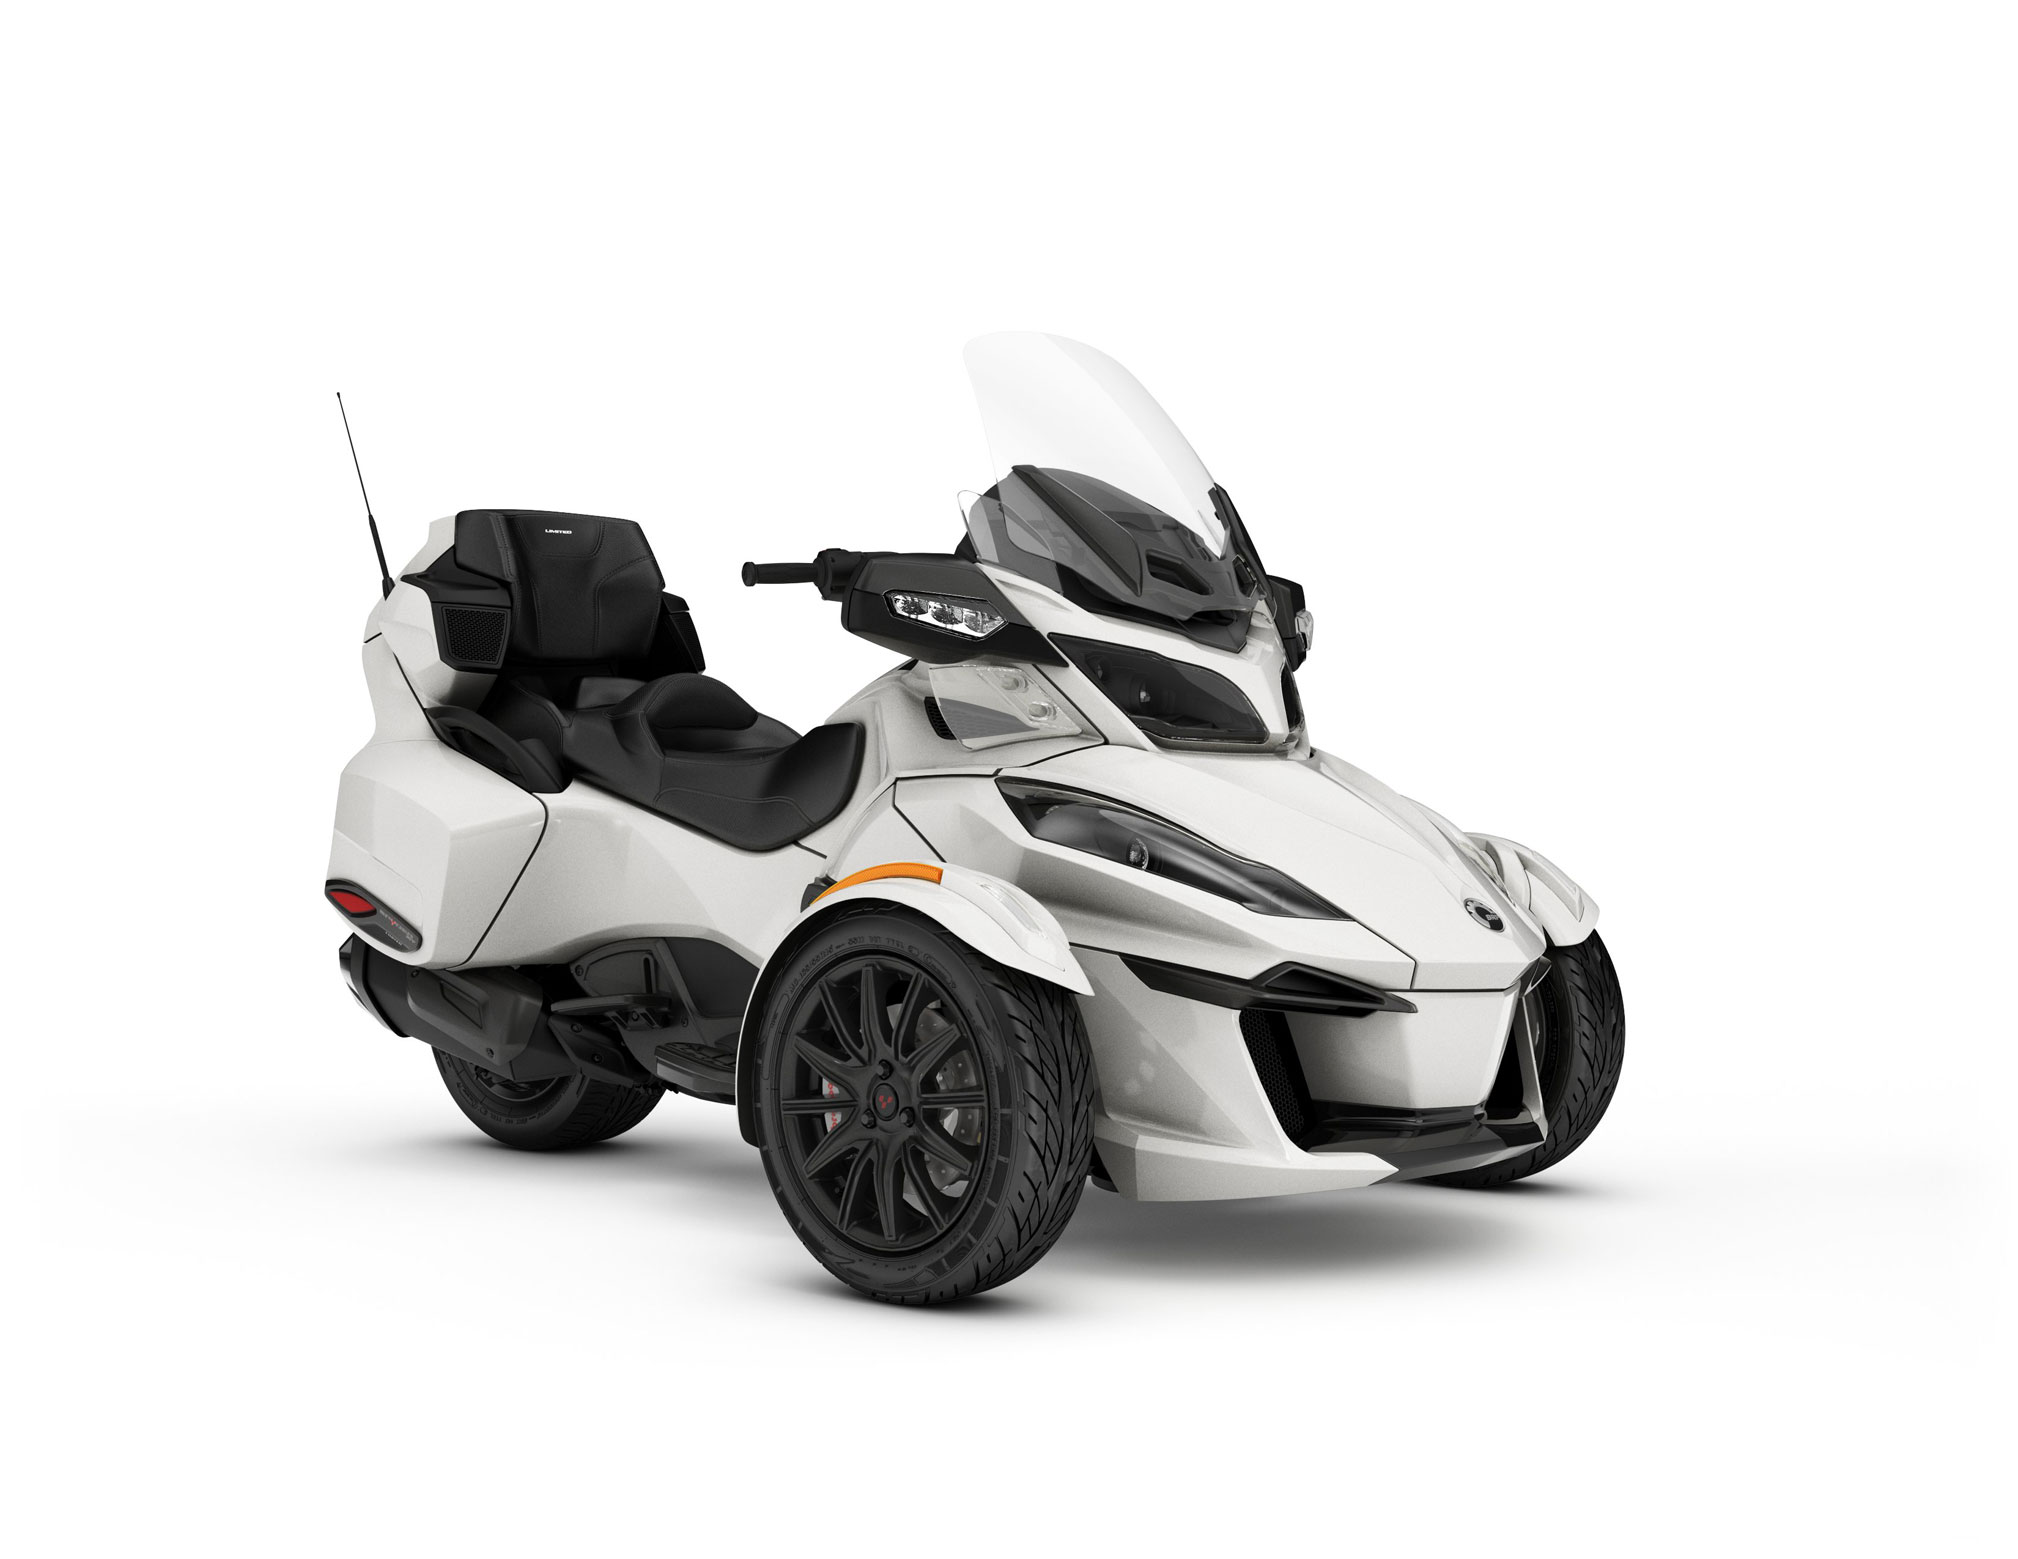 2018 Can-Am Spyder RT Limited